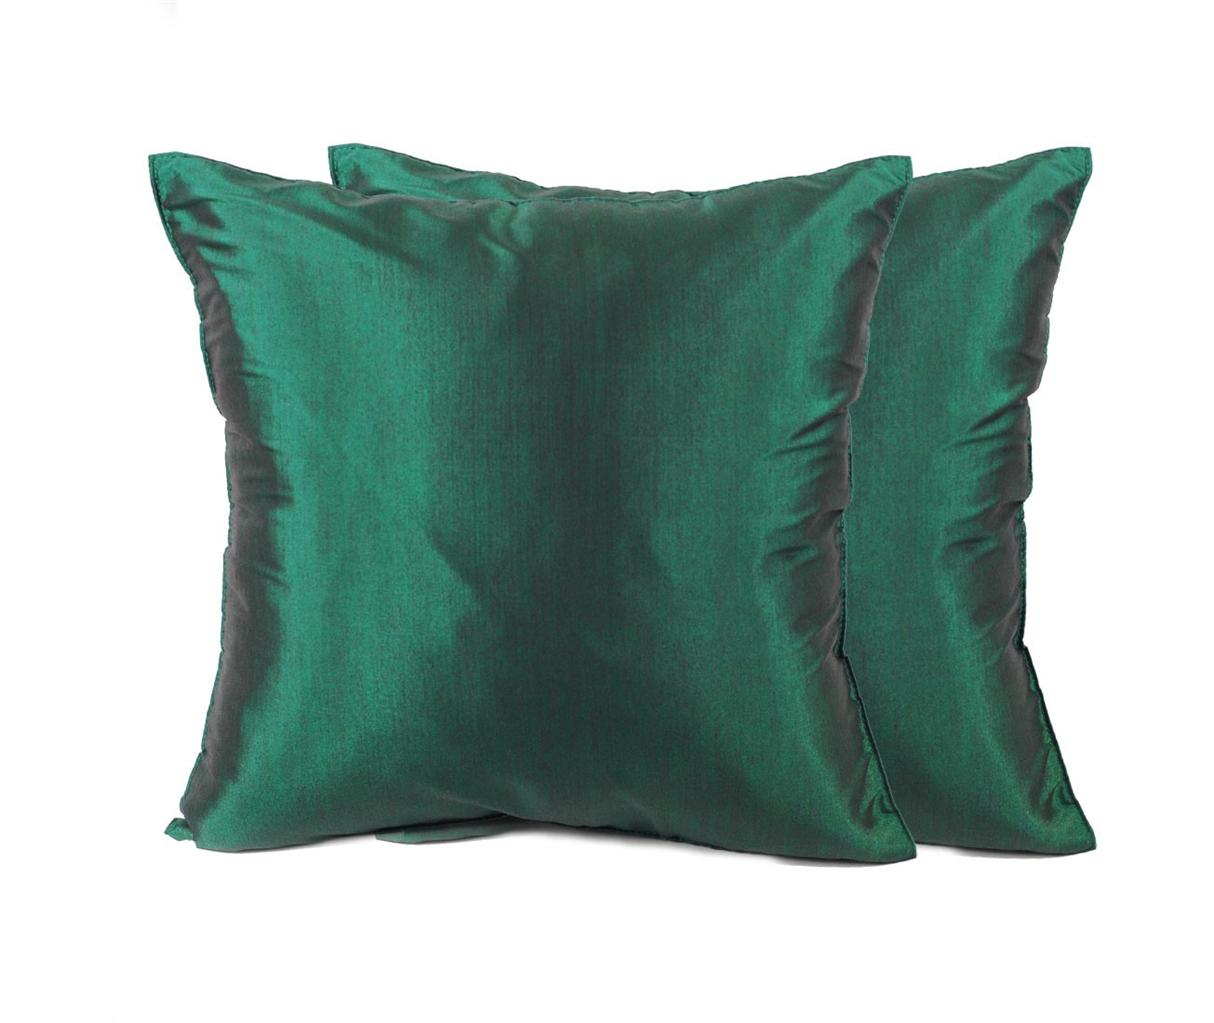 Silk Decorative Pillow Covers : 2x THAI SILK THROW DECORATIVE PILLOW CASE COVERS CUSHION SOLID COLOR 16